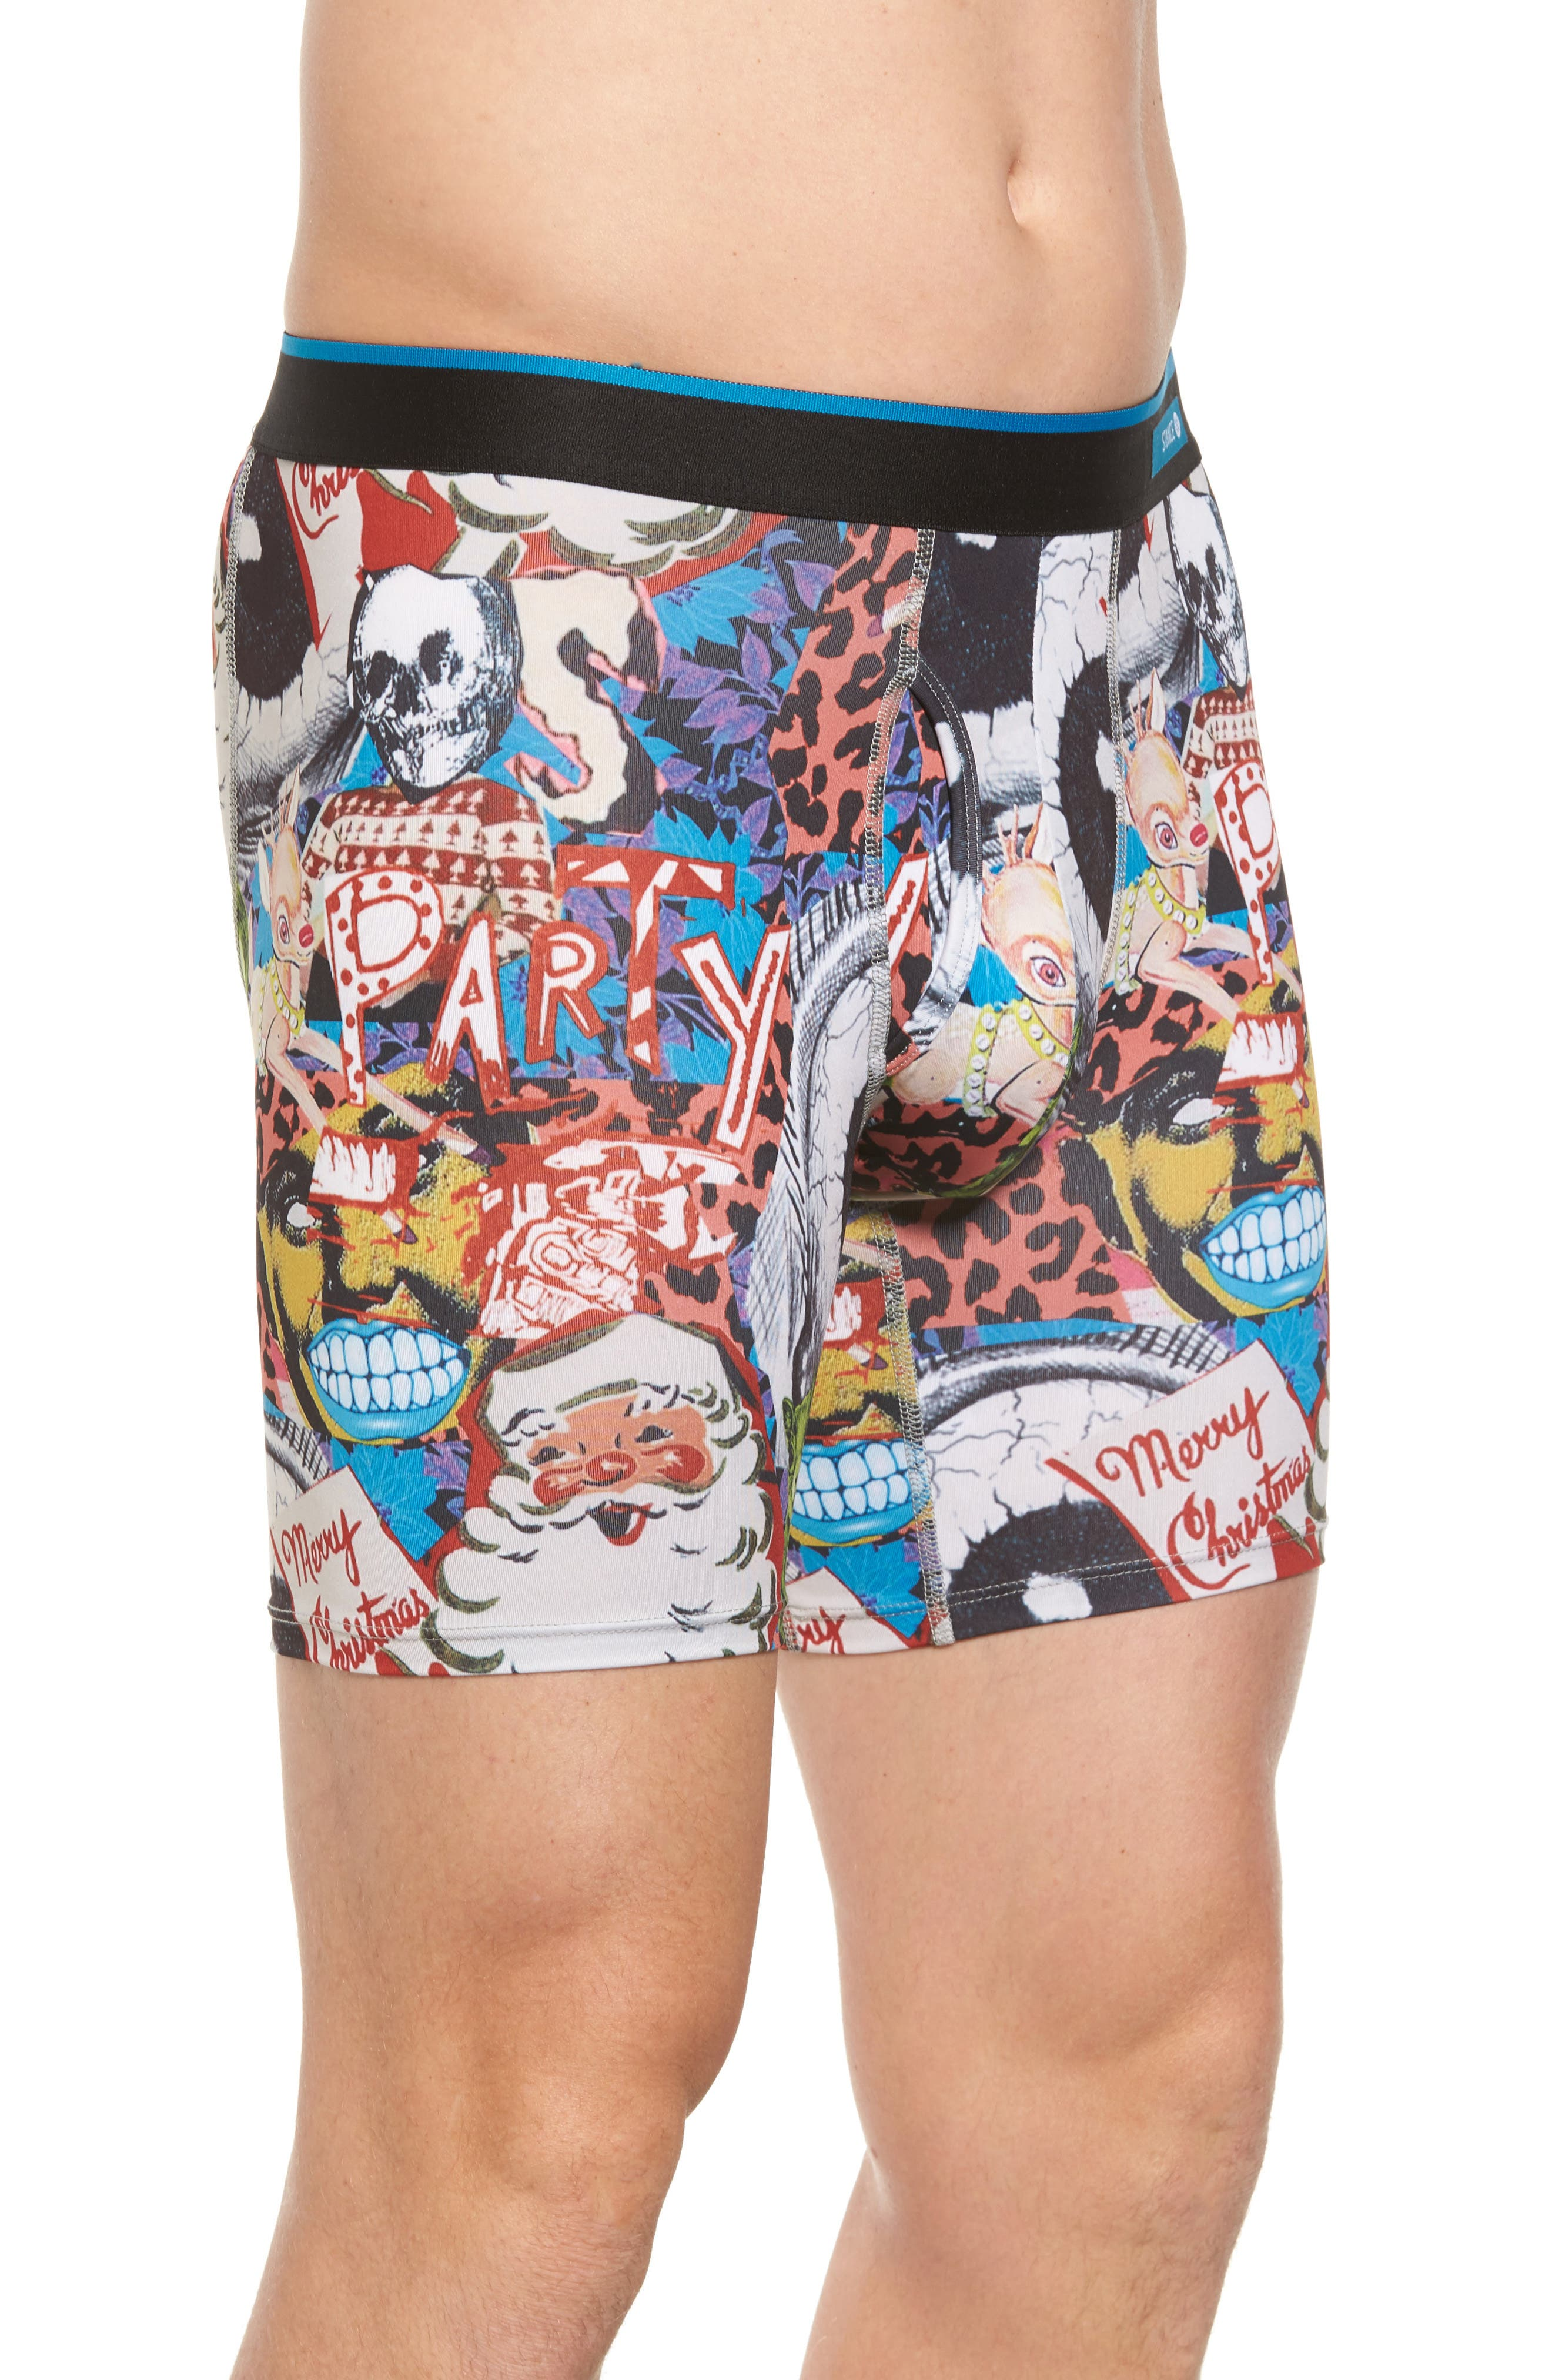 Cycle Zombies Xmas Boxer Briefs,                             Alternate thumbnail 2, color,                             401